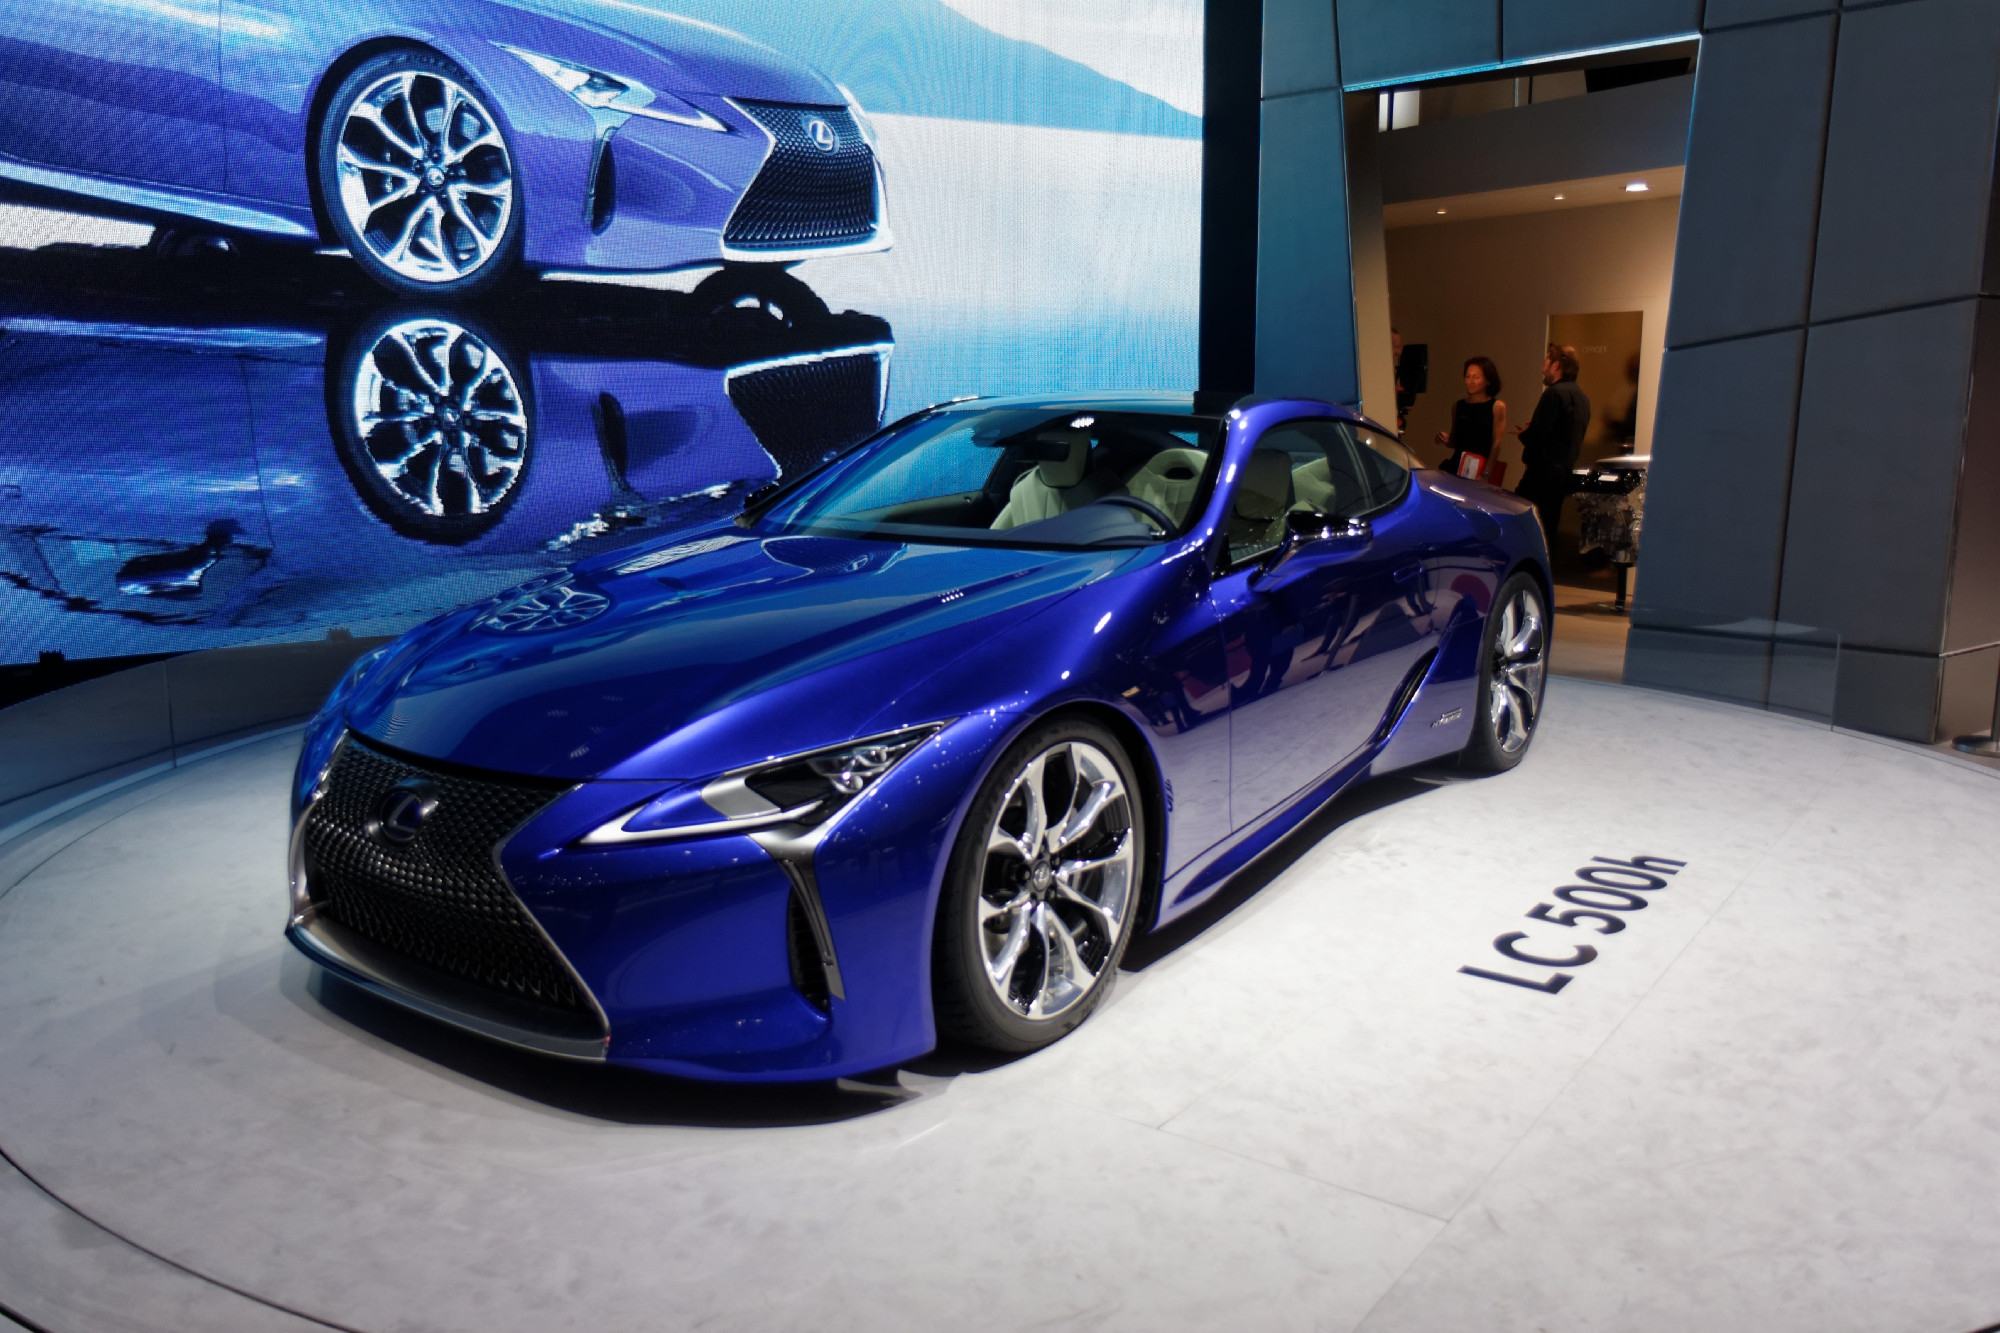 lexus lc500h l 39 hybride dynamique vid o en direct du salon de gen ve. Black Bedroom Furniture Sets. Home Design Ideas